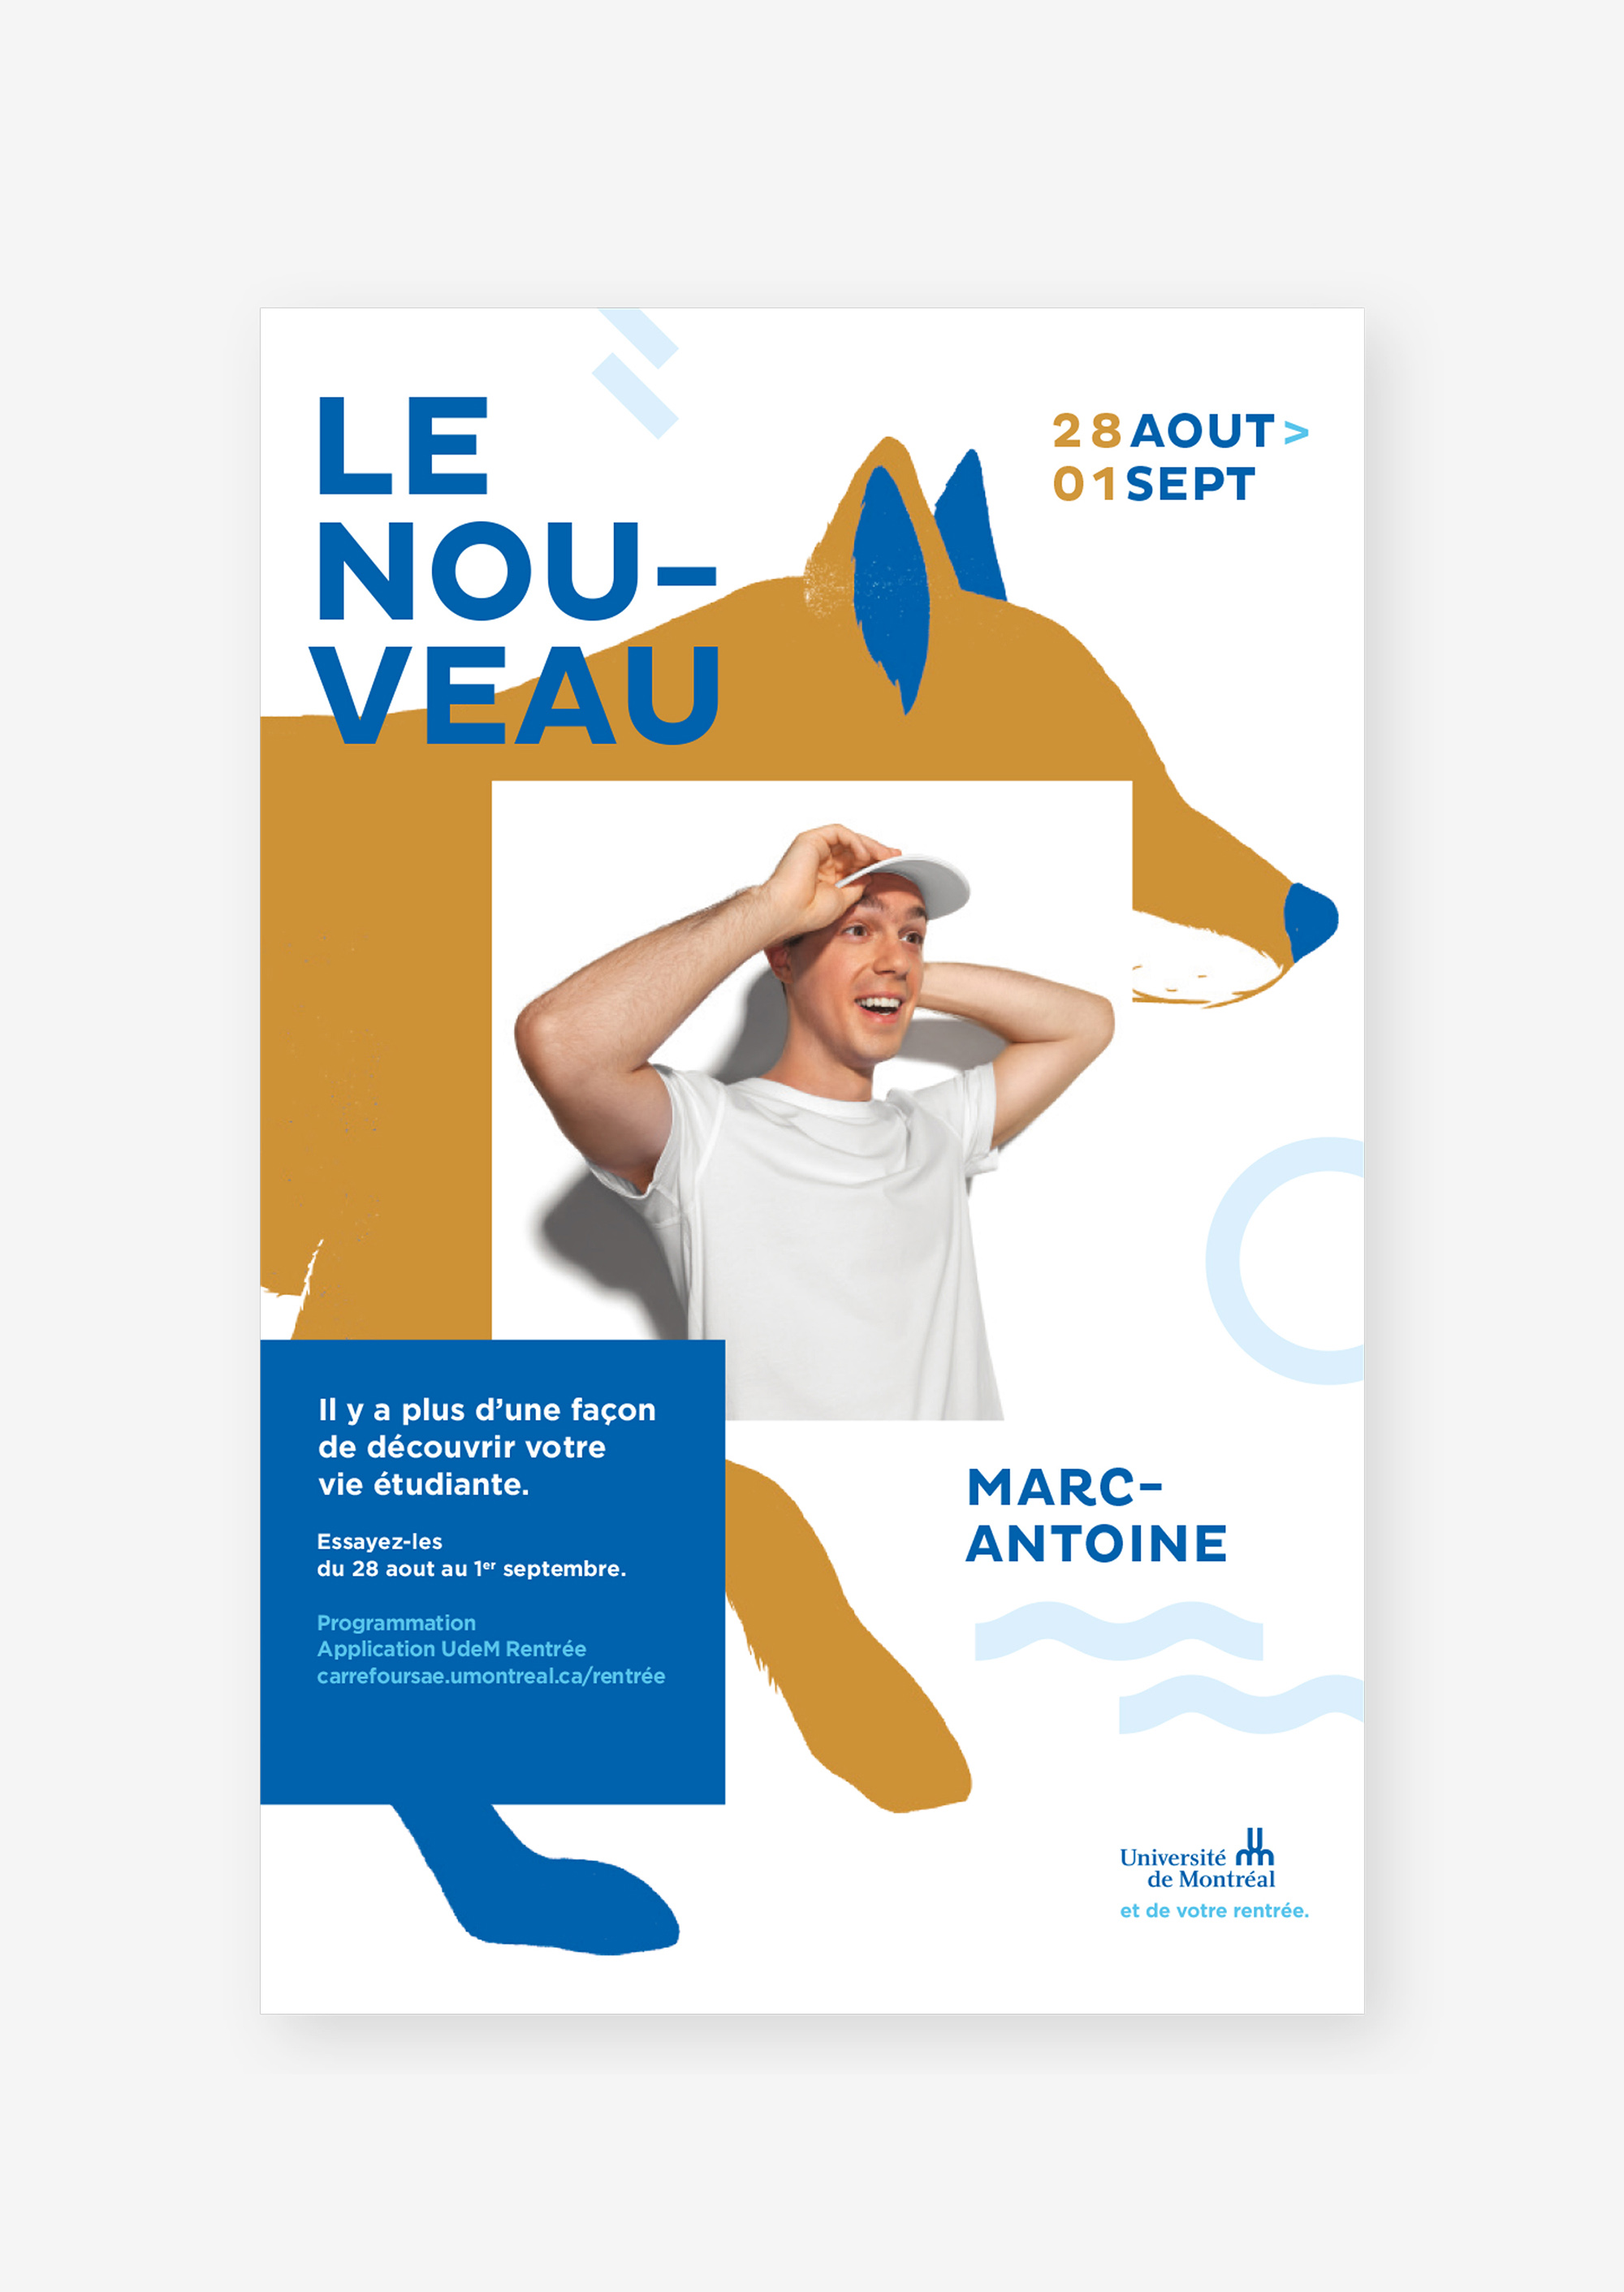 AFFICHE-COMMUNICATION-UNIVERSITE-GRAPHISME-CREATION-ILLUSTRATION